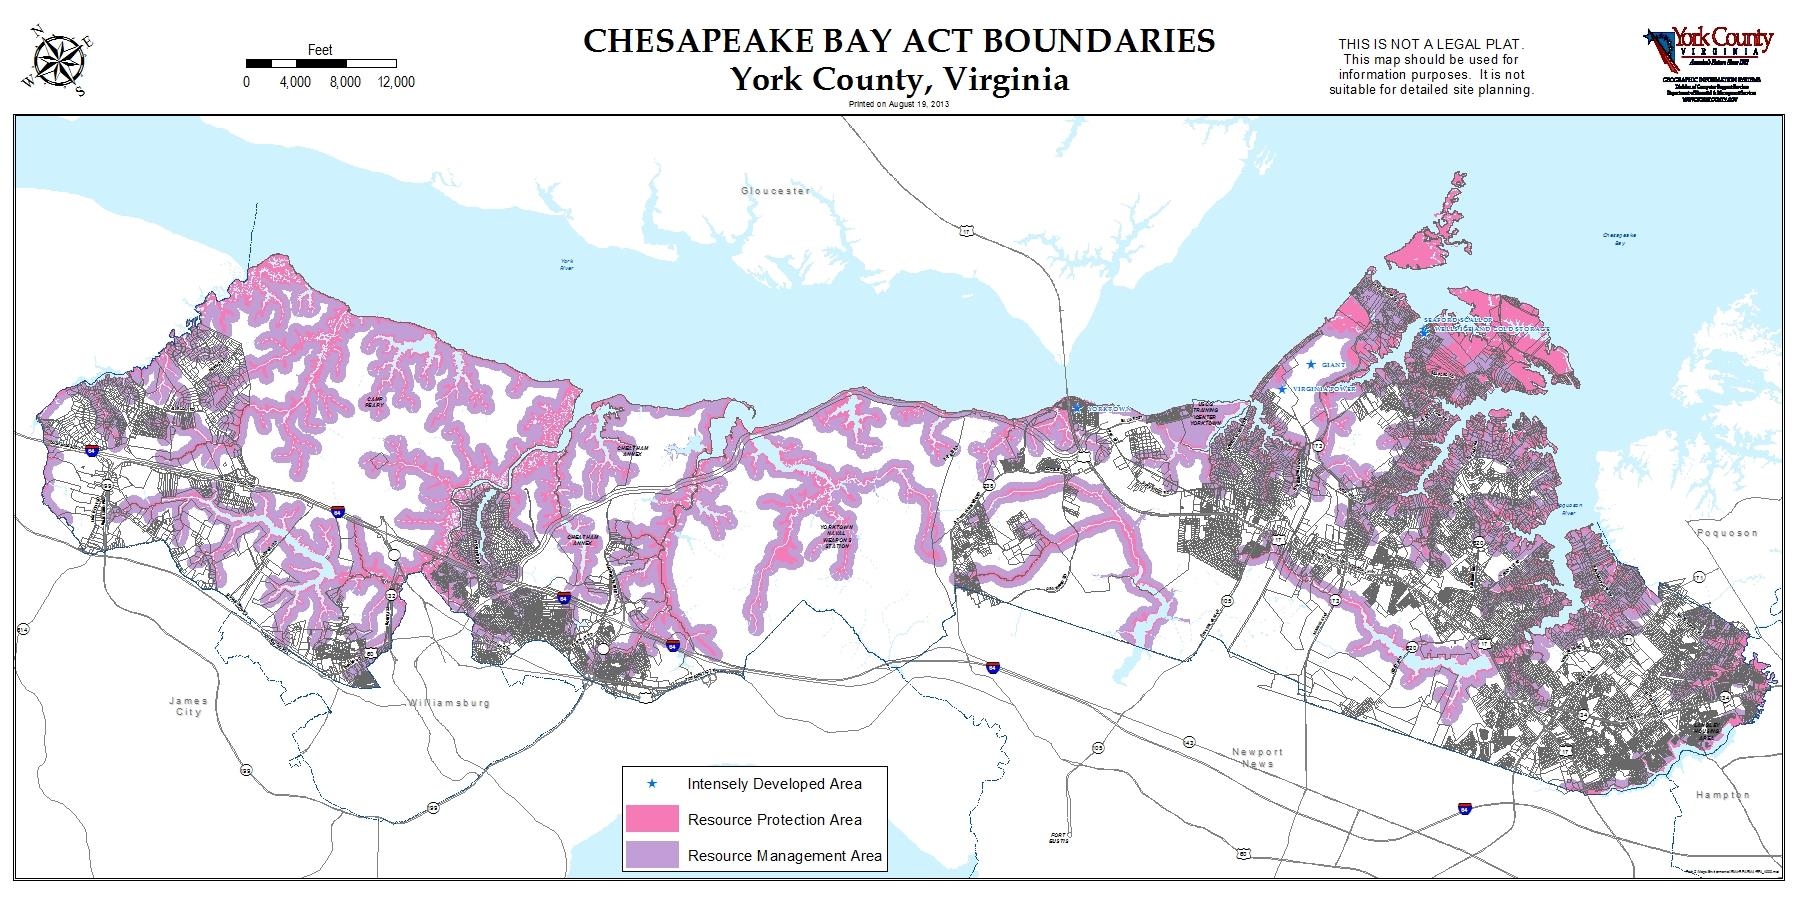 Chesapeake Bay Protection Act - Large